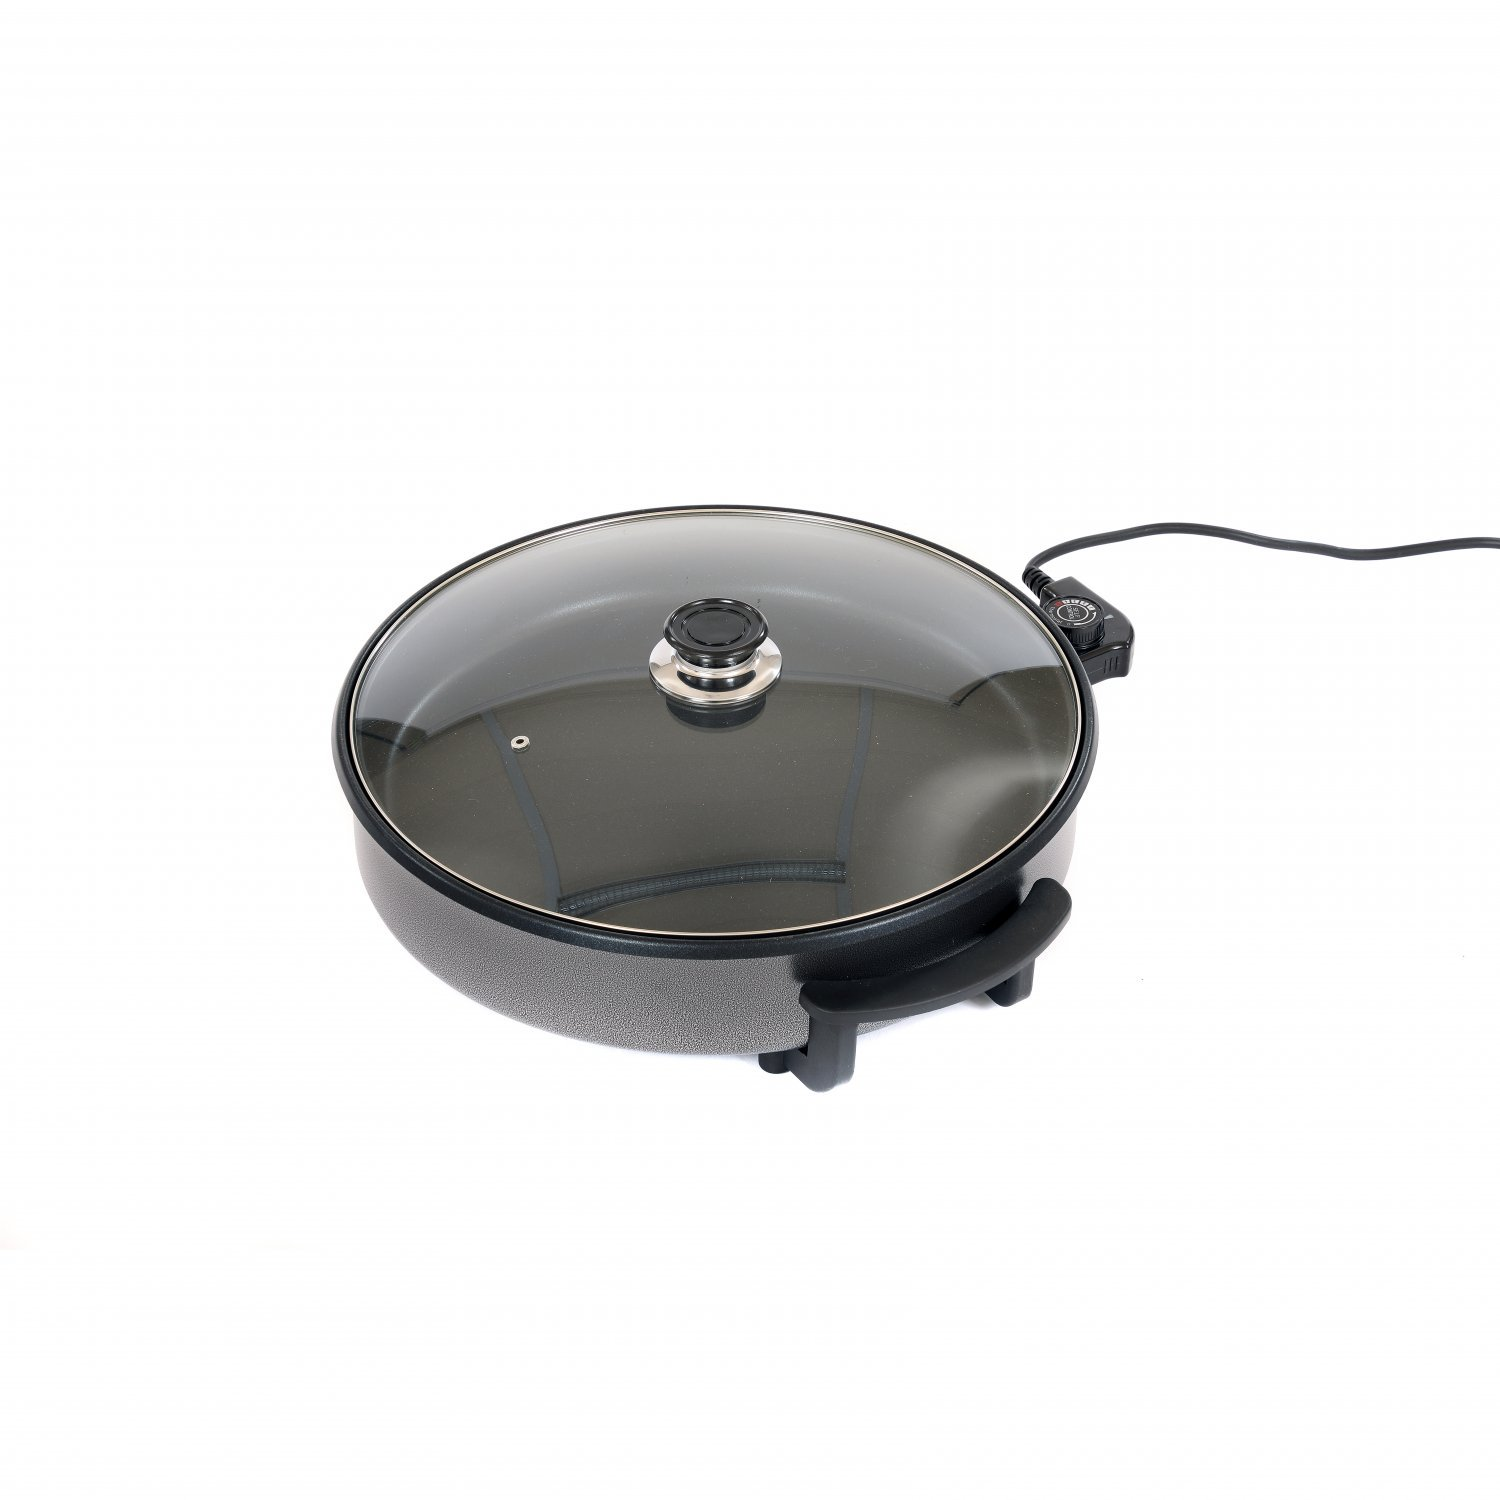 1500W Large Multi Function Electric Cooker Frying Pan Glass Lid